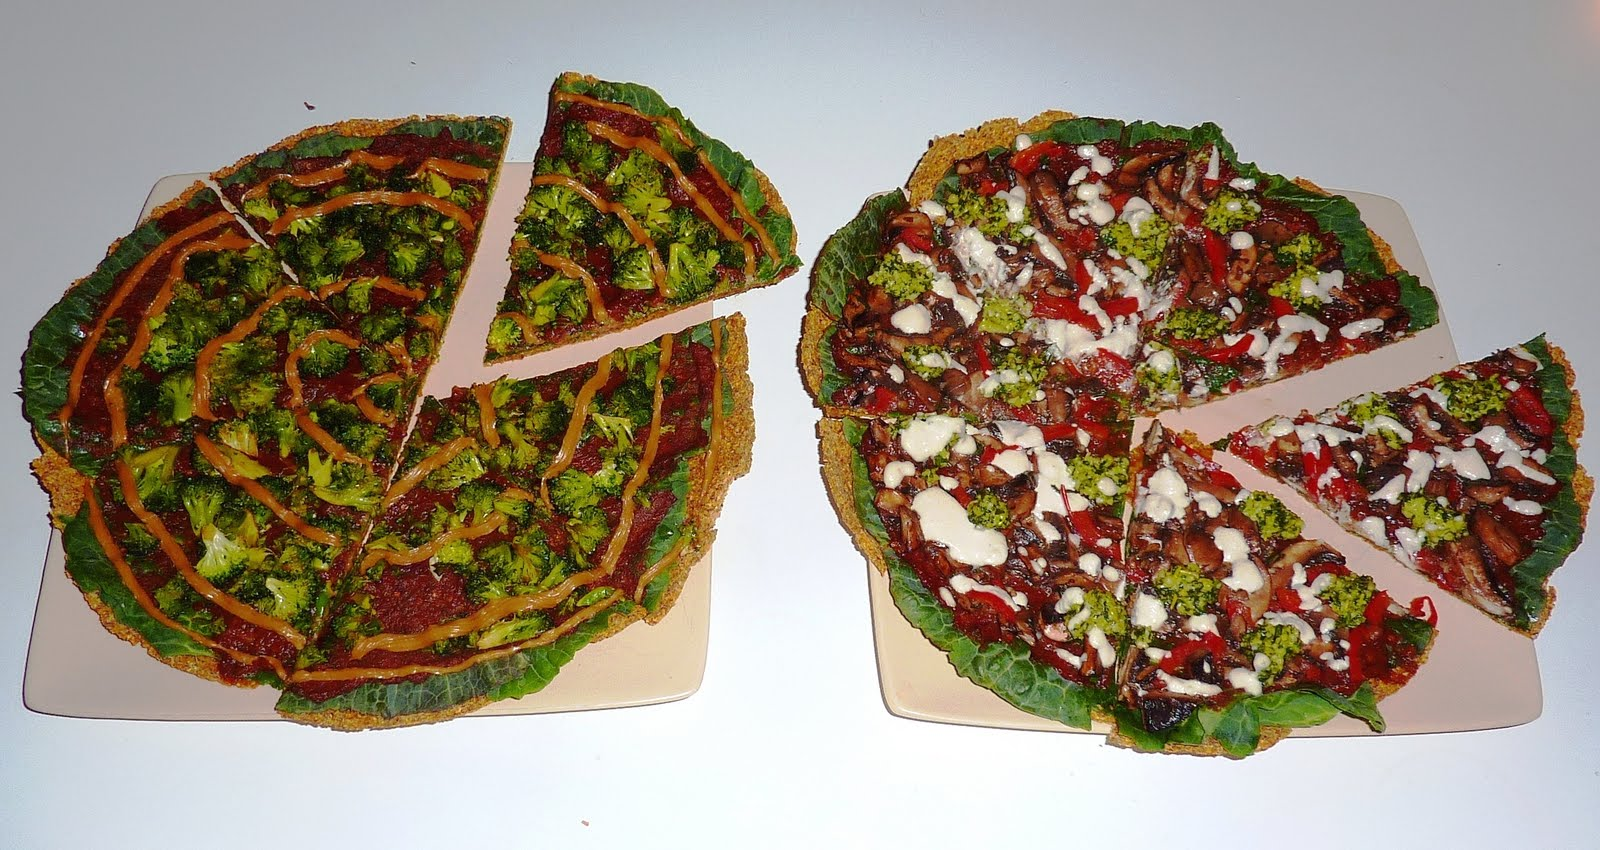 Two raw pizzas or salads for those without dehydrators better raw having a great recipe for the pizza base and sauce already see previous post the 2 pizzas i decided to create were 1 mushroom and basil pesto forumfinder Images